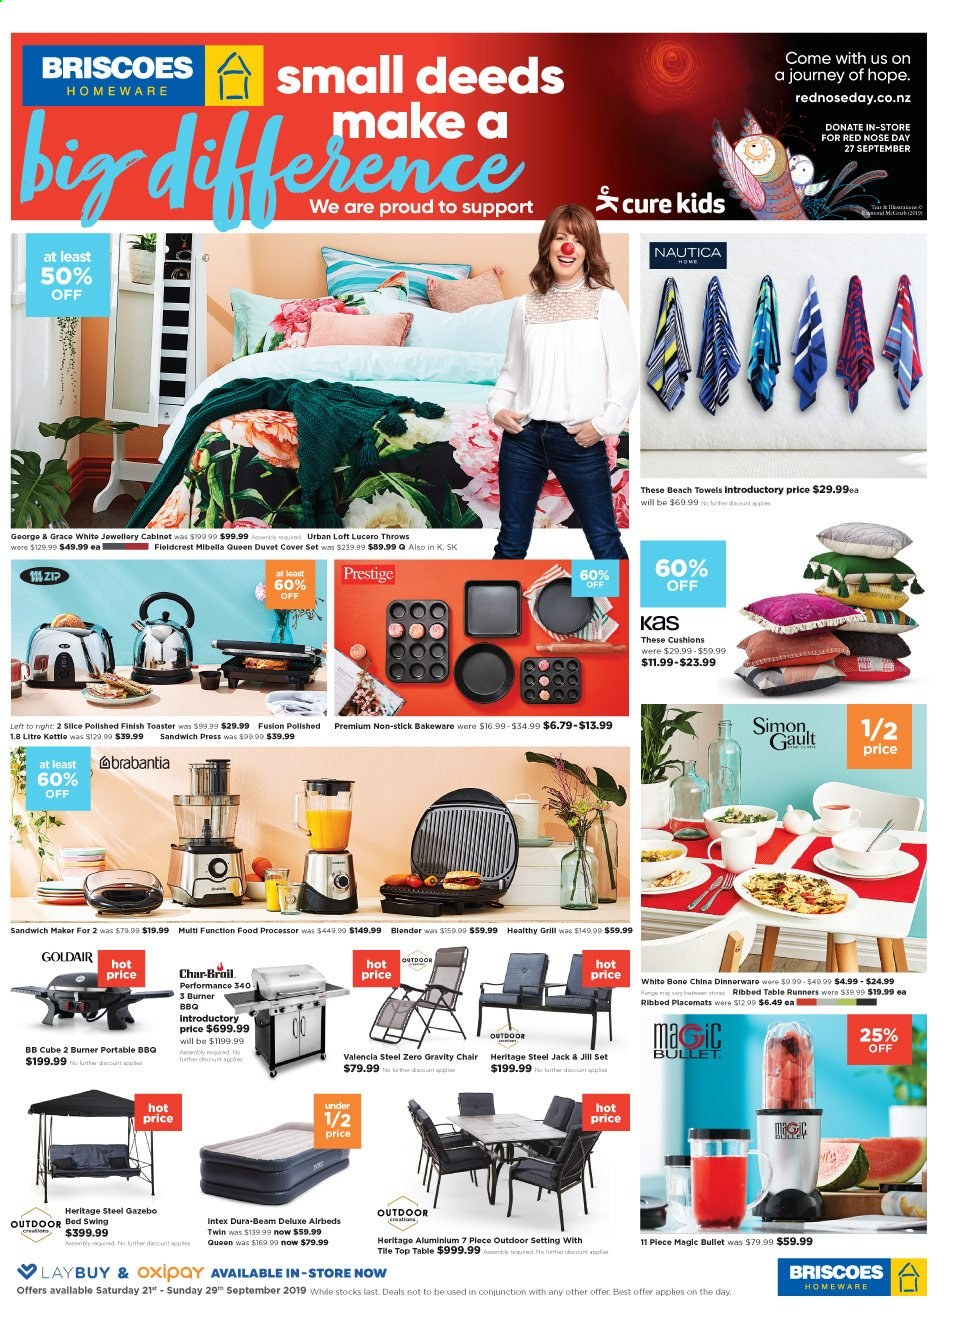 Briscoes mailer - 21.09.2019 - 29.09.2019 - Sales products - chair, bed, cushion, Brabantia, bakeware, toaster, grill, Intex. Page 1.